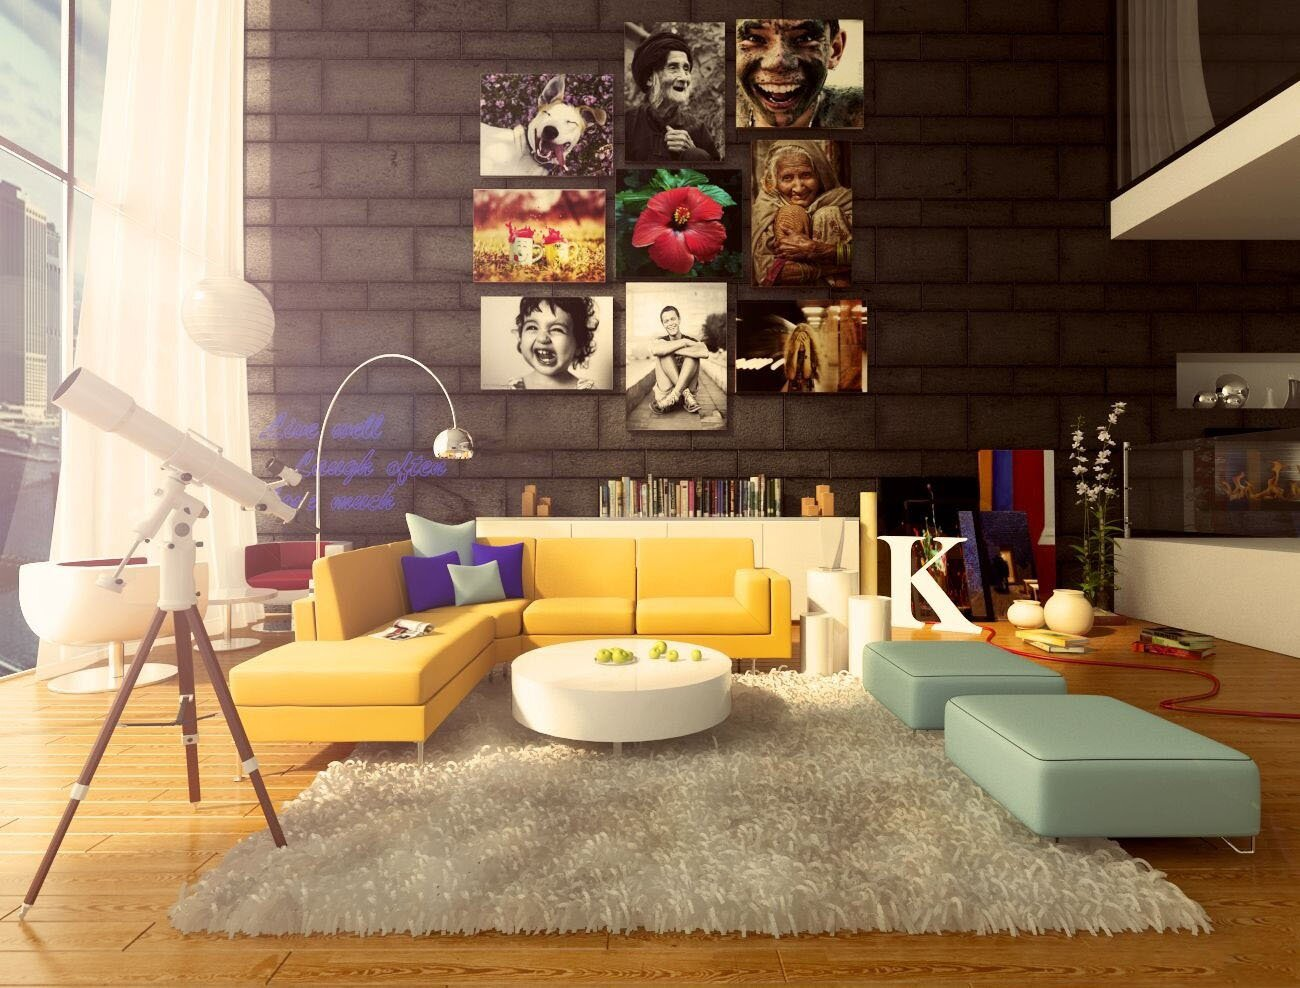 Bring color to your home 4